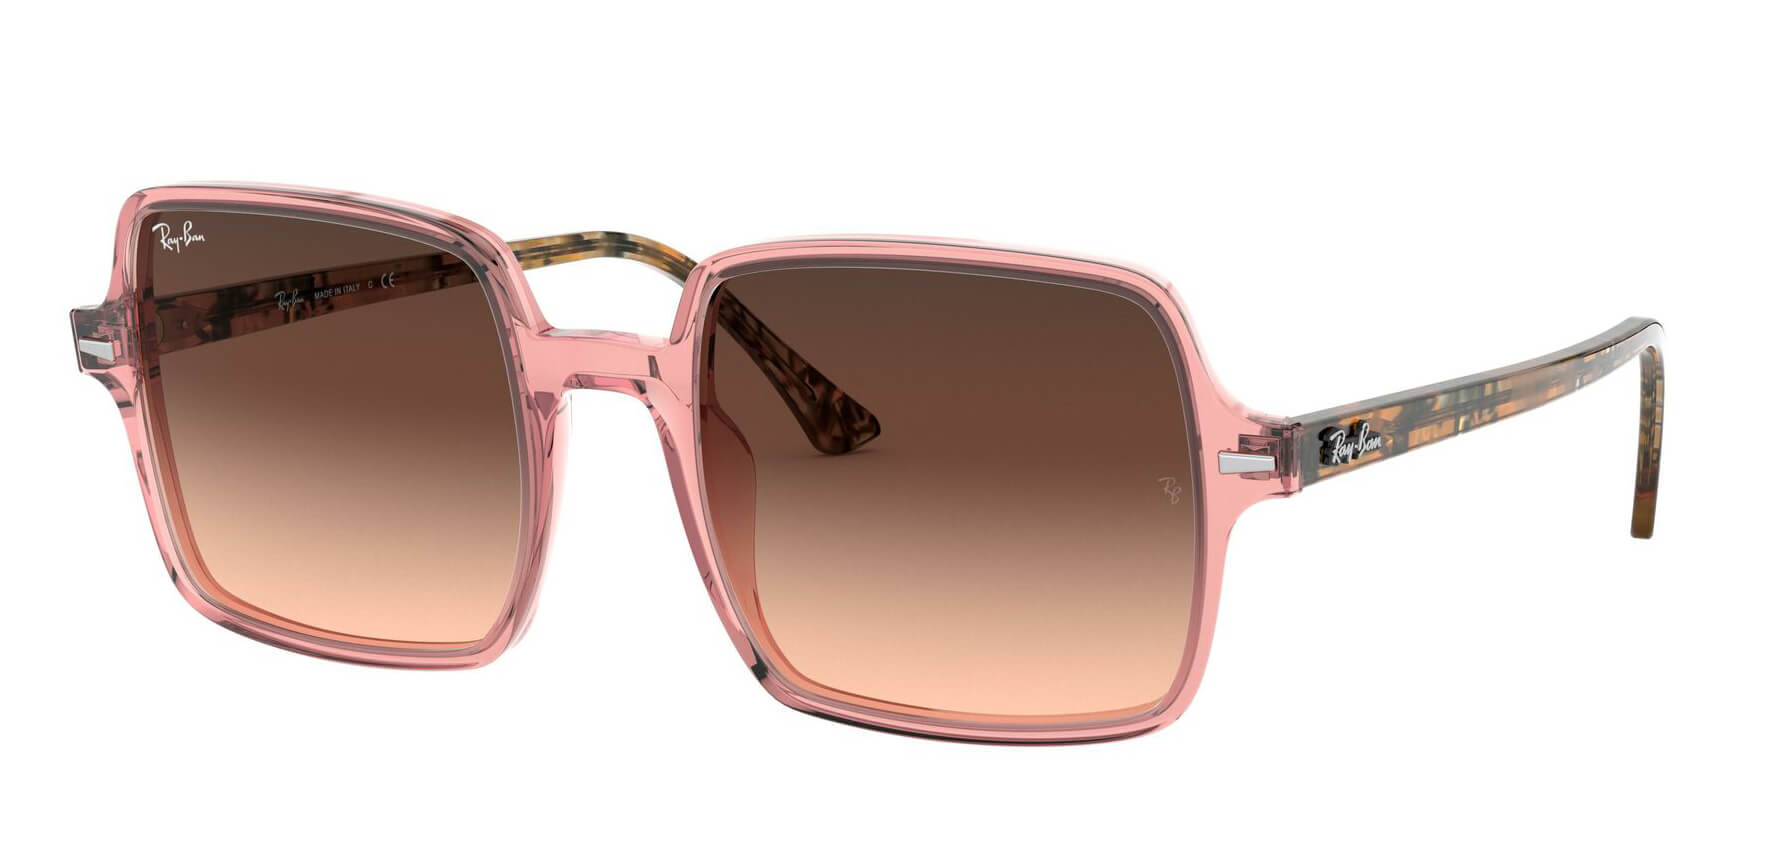 Angle_Left01 Ray-Ban Ray-Ban 0RB1973 1282A5 53/20 Transparant, Roze/Bruin